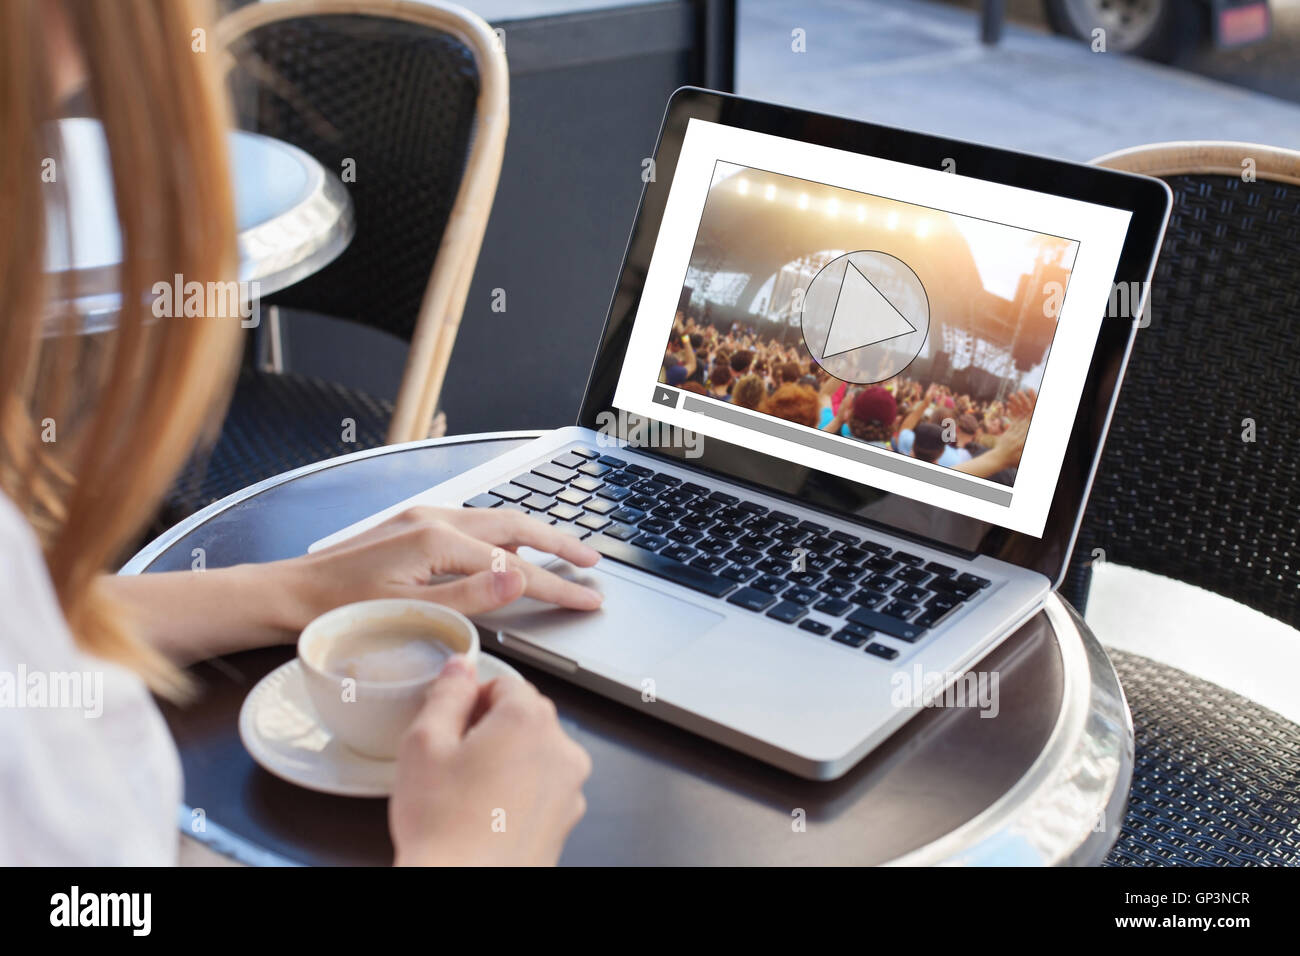 video streaming, online concert, woman watching live music clip on internet on laptop in cafe - Stock Image